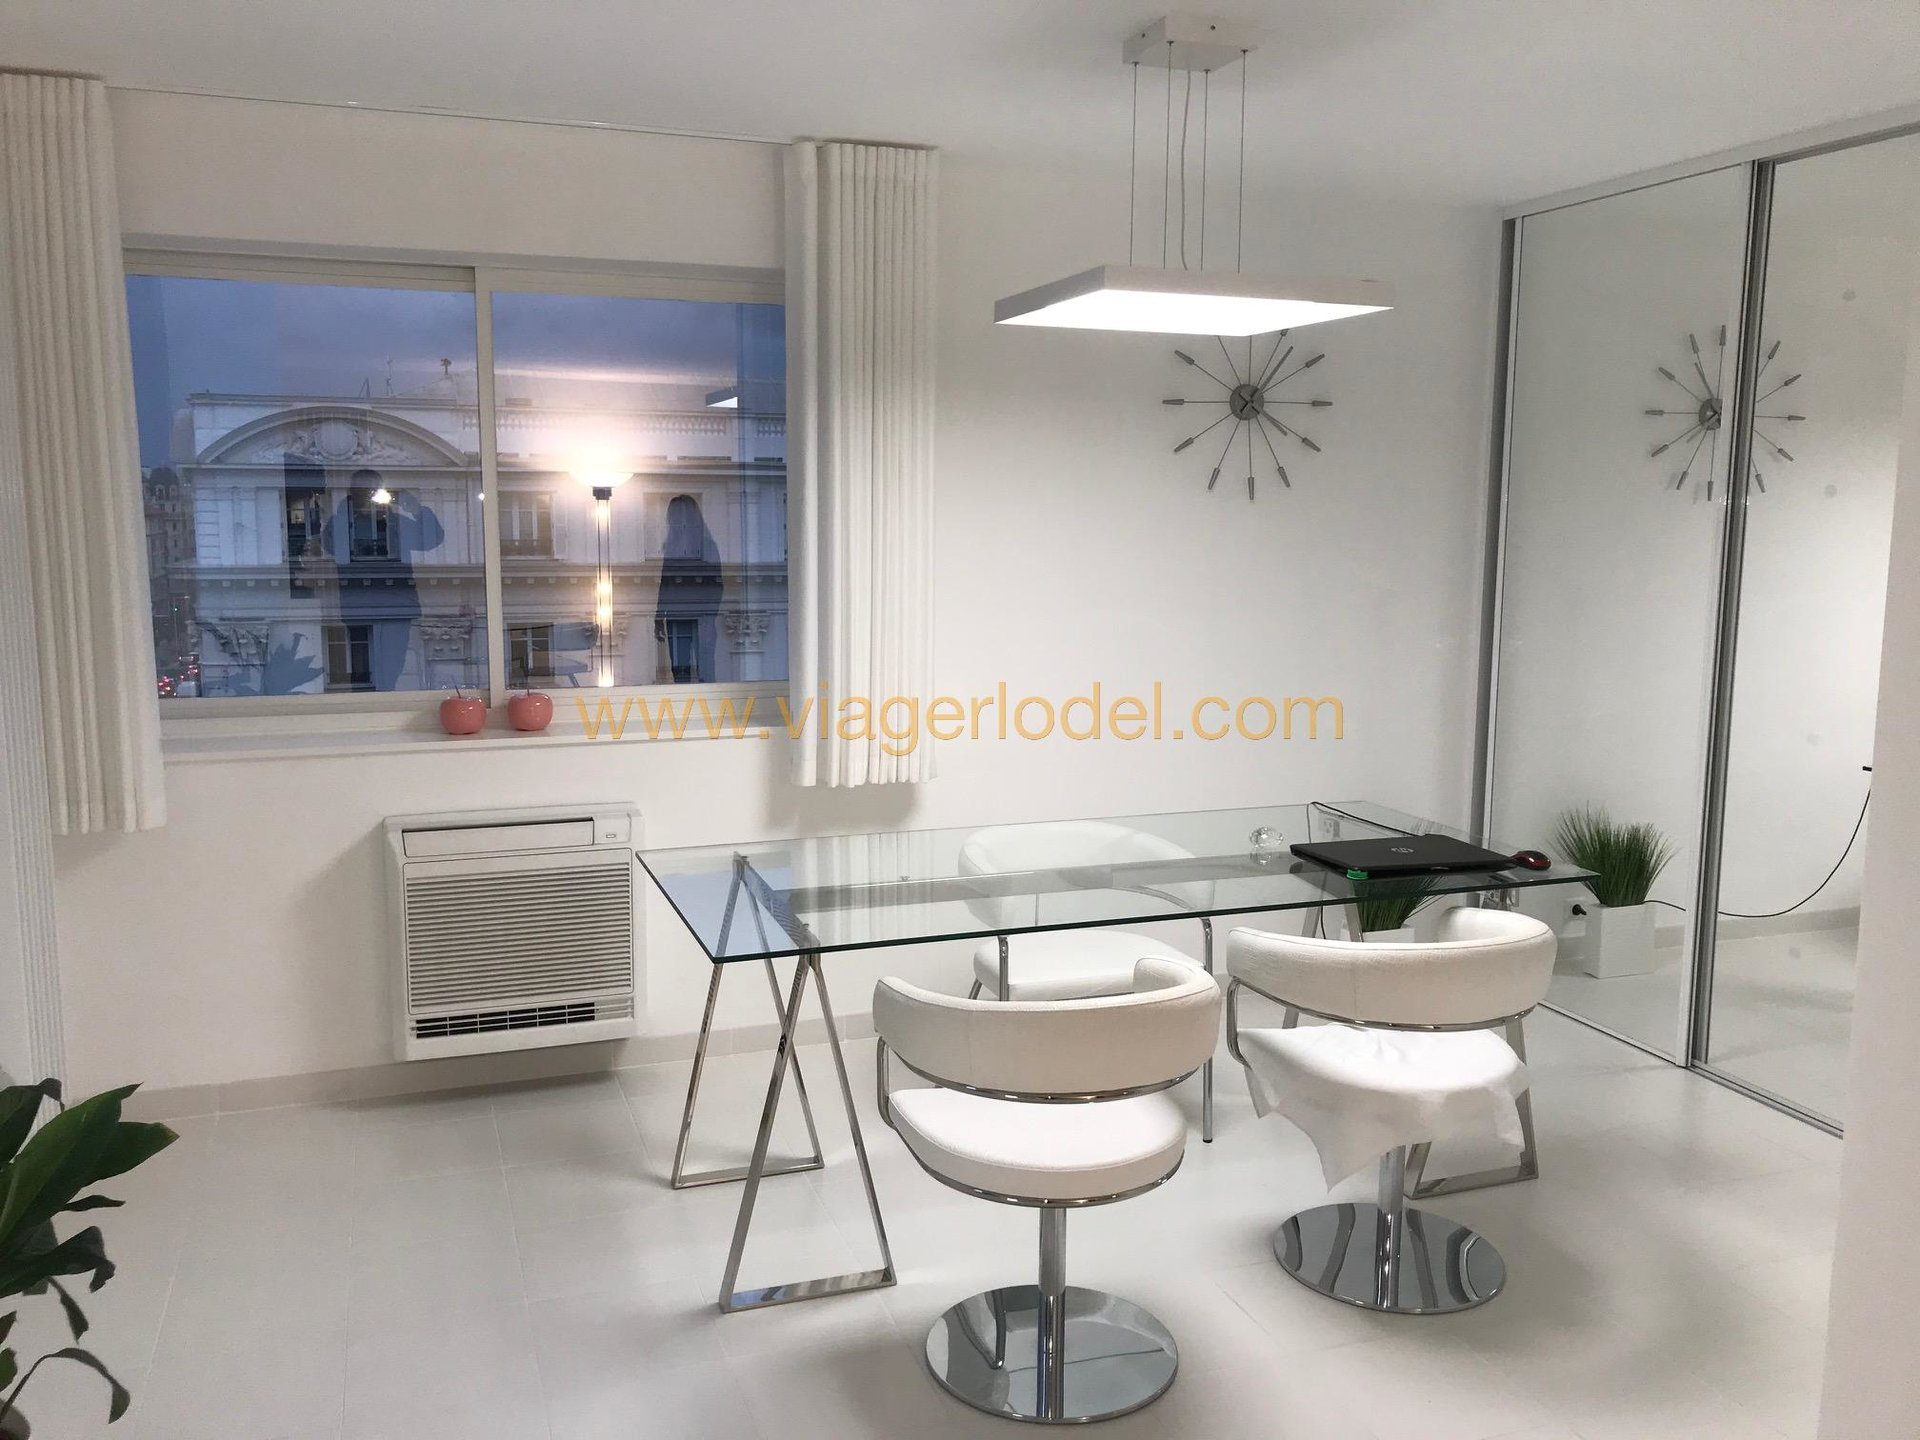 VIAGER OCCUPE - NICE CENTRE-VILLE – NICE ETOILE